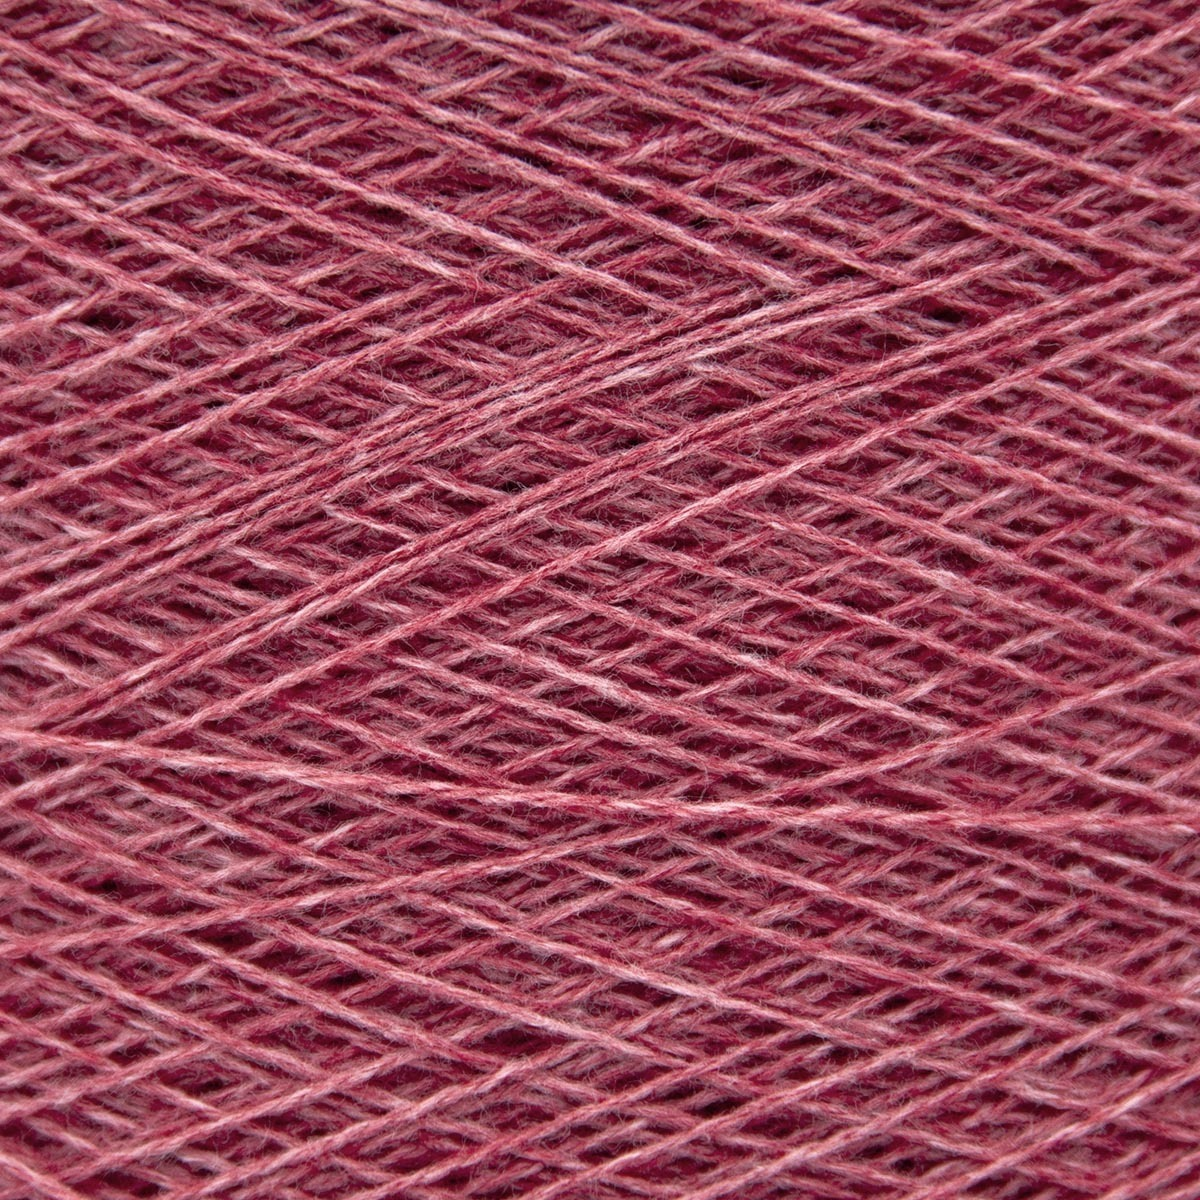 Knoll Yarns Coast - 011